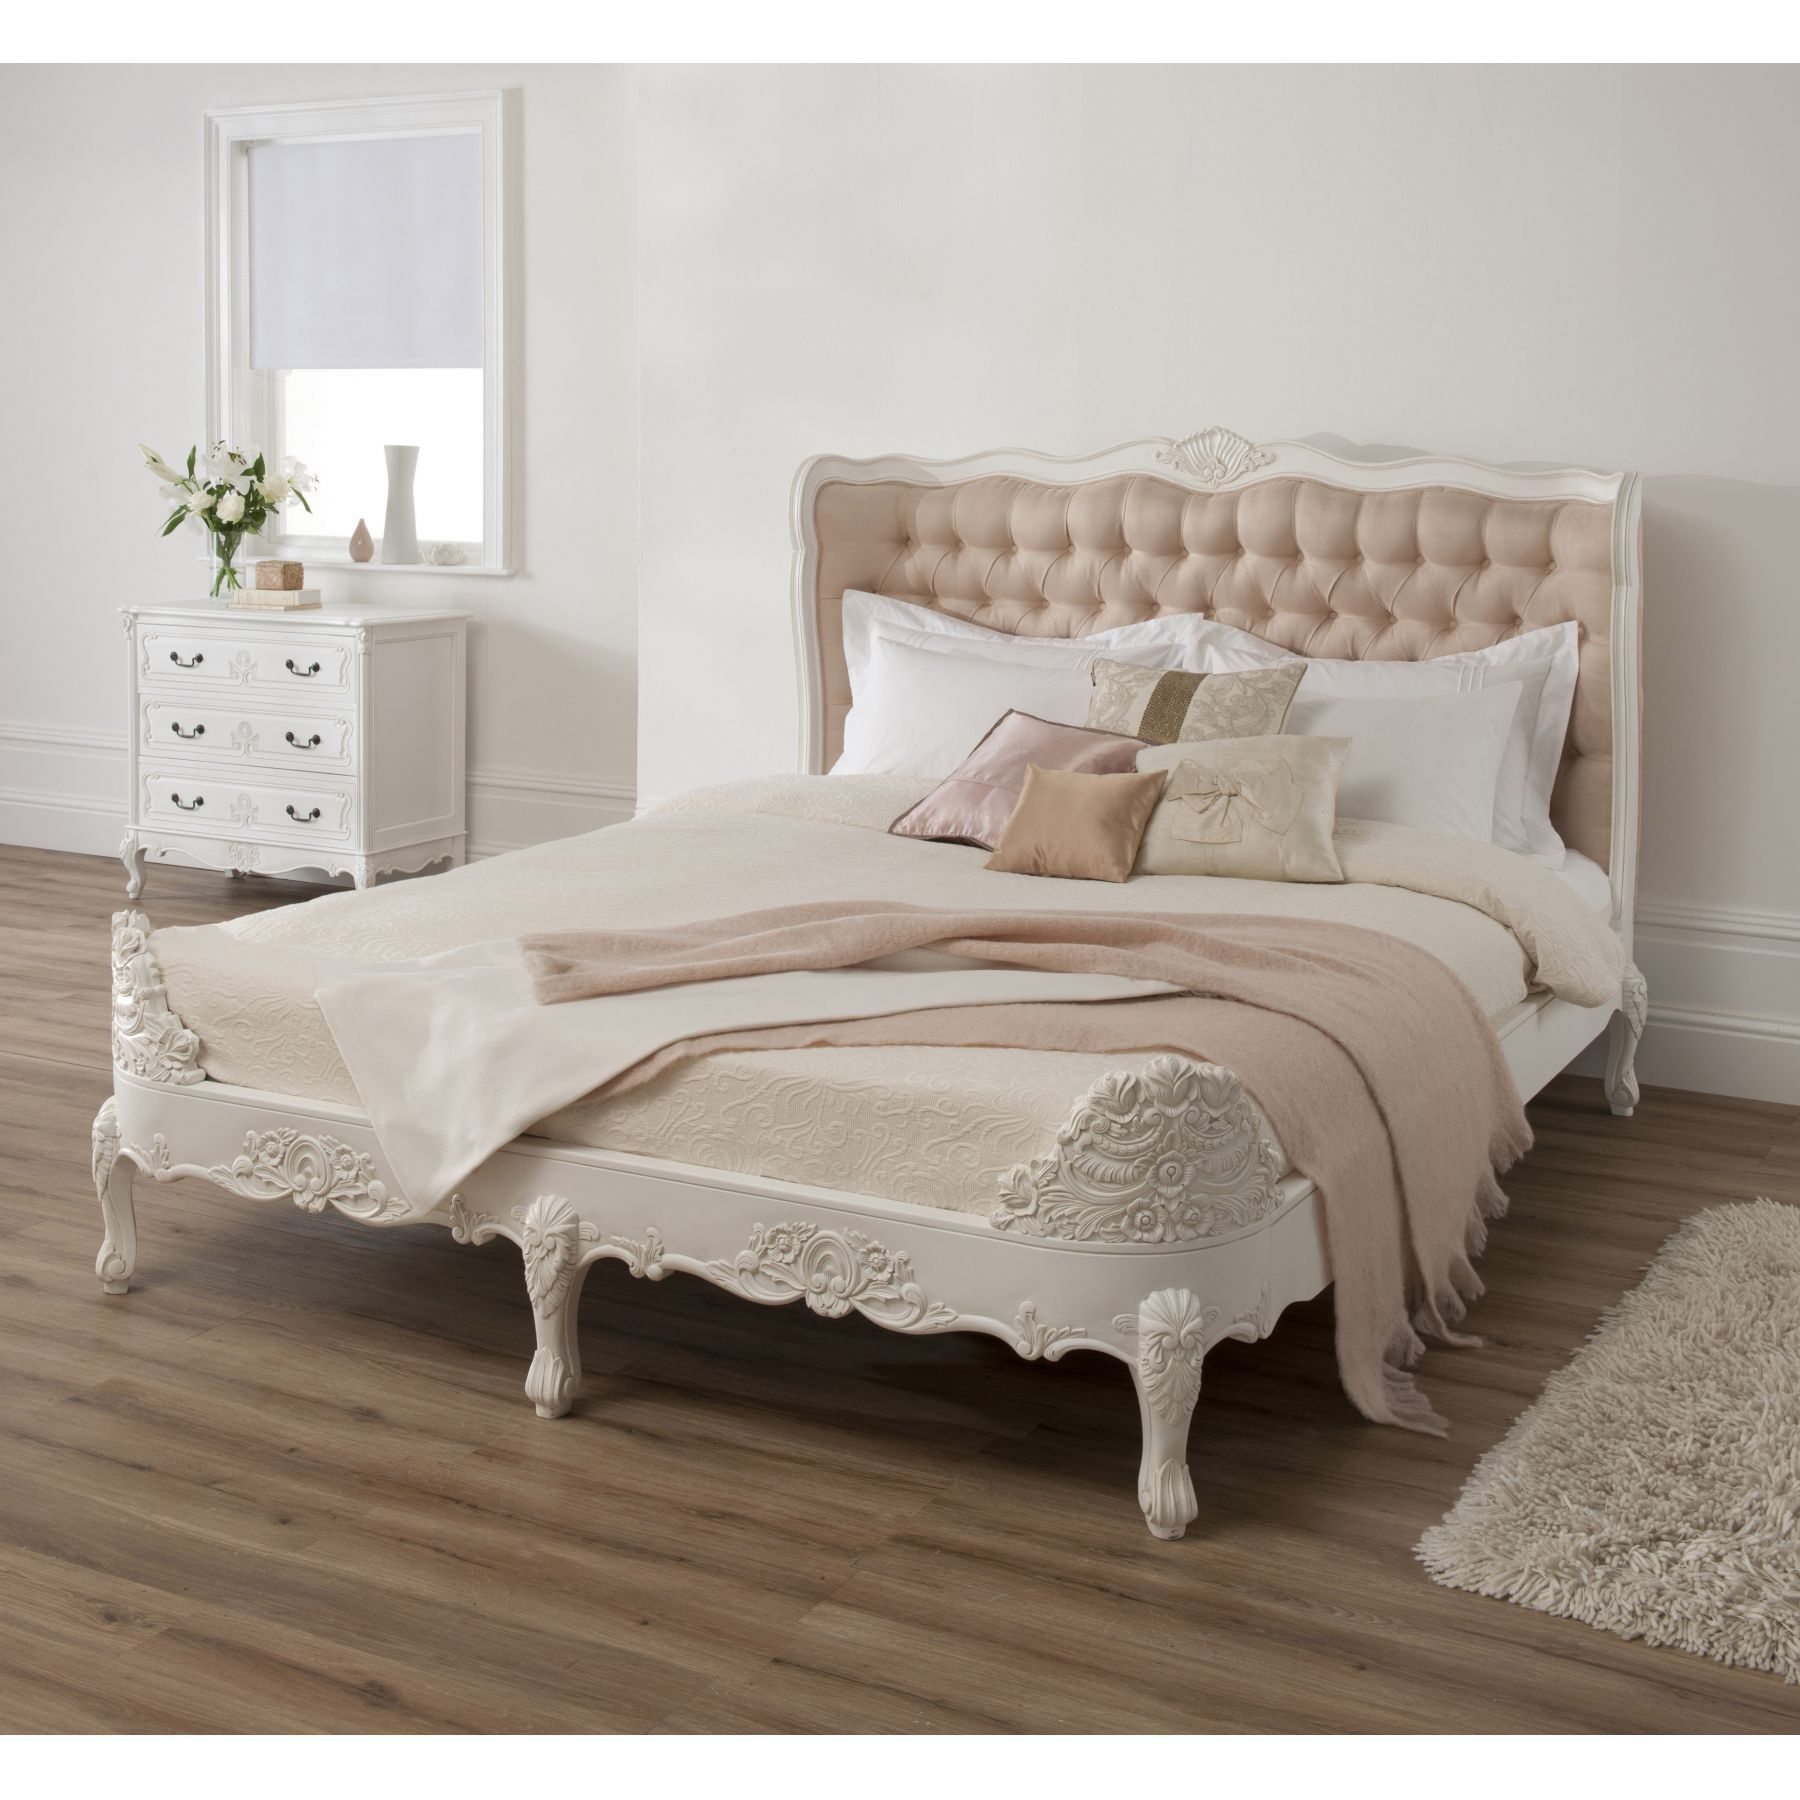 baroque upholstered antique french style bed antique french ornate white bed size double ref